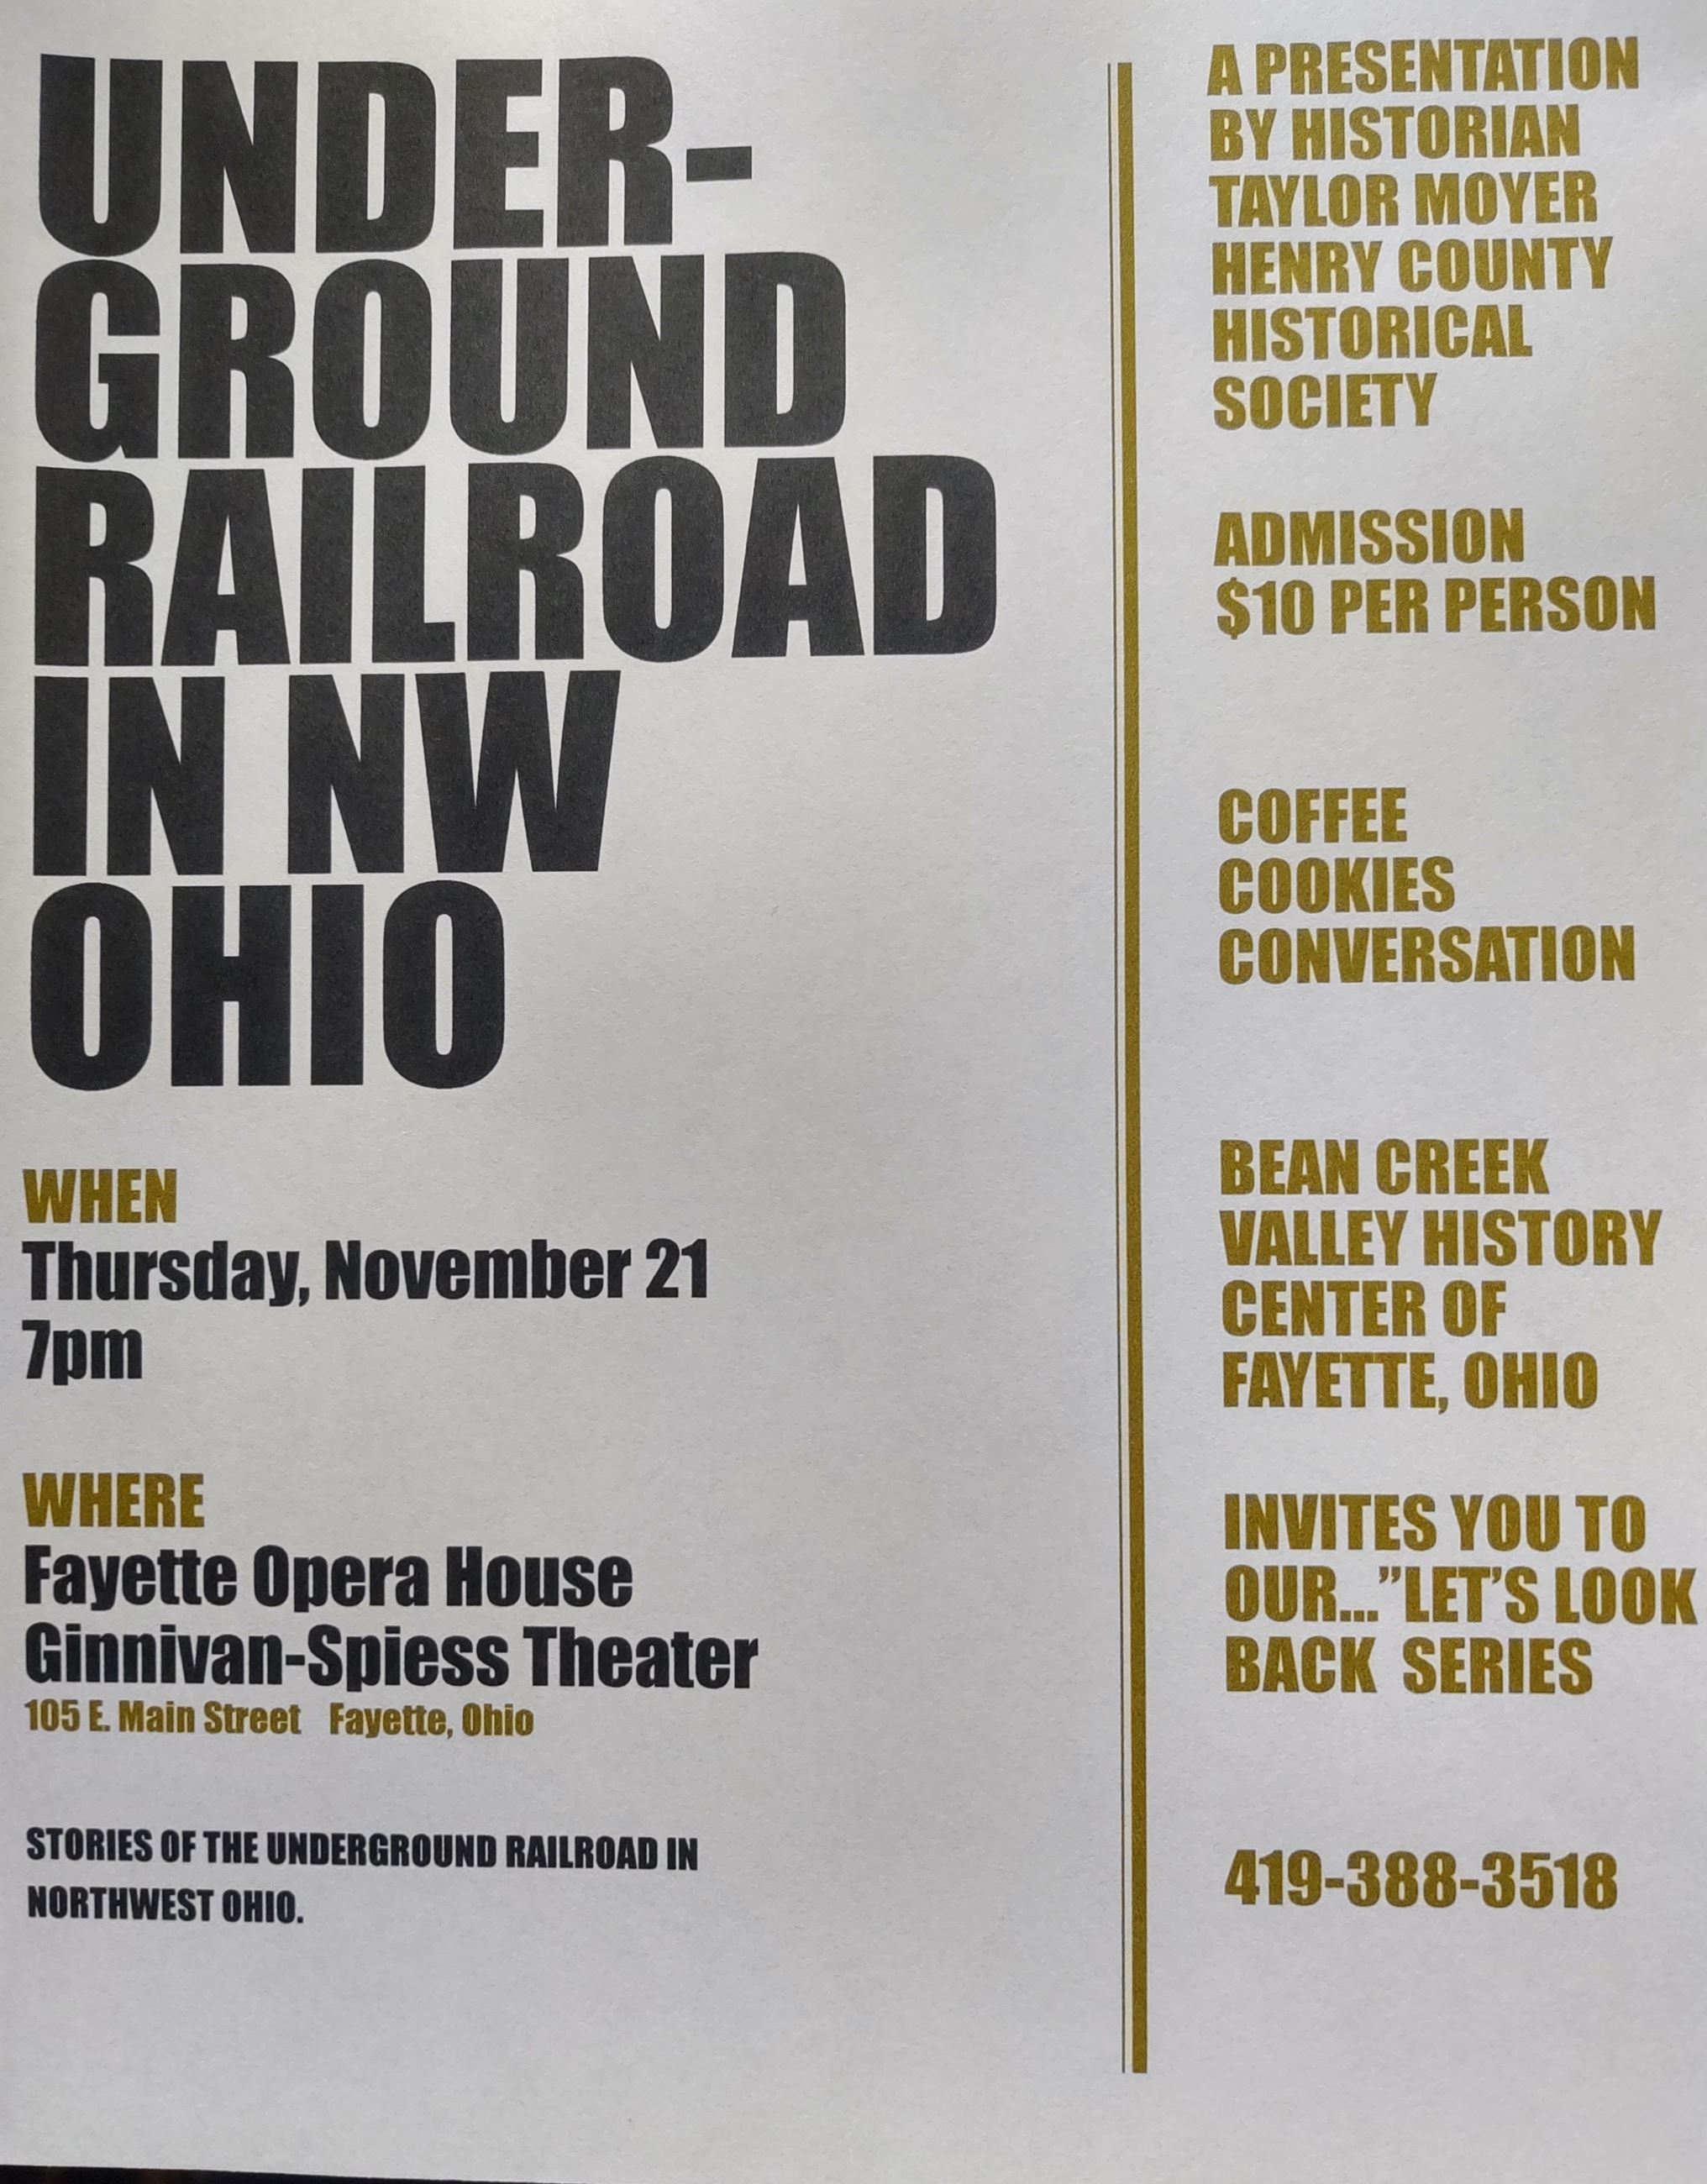 Underground Railroad in NW Ohio presentation by Taylor Moyer, Nov 21st at the Fayette Opera House, F